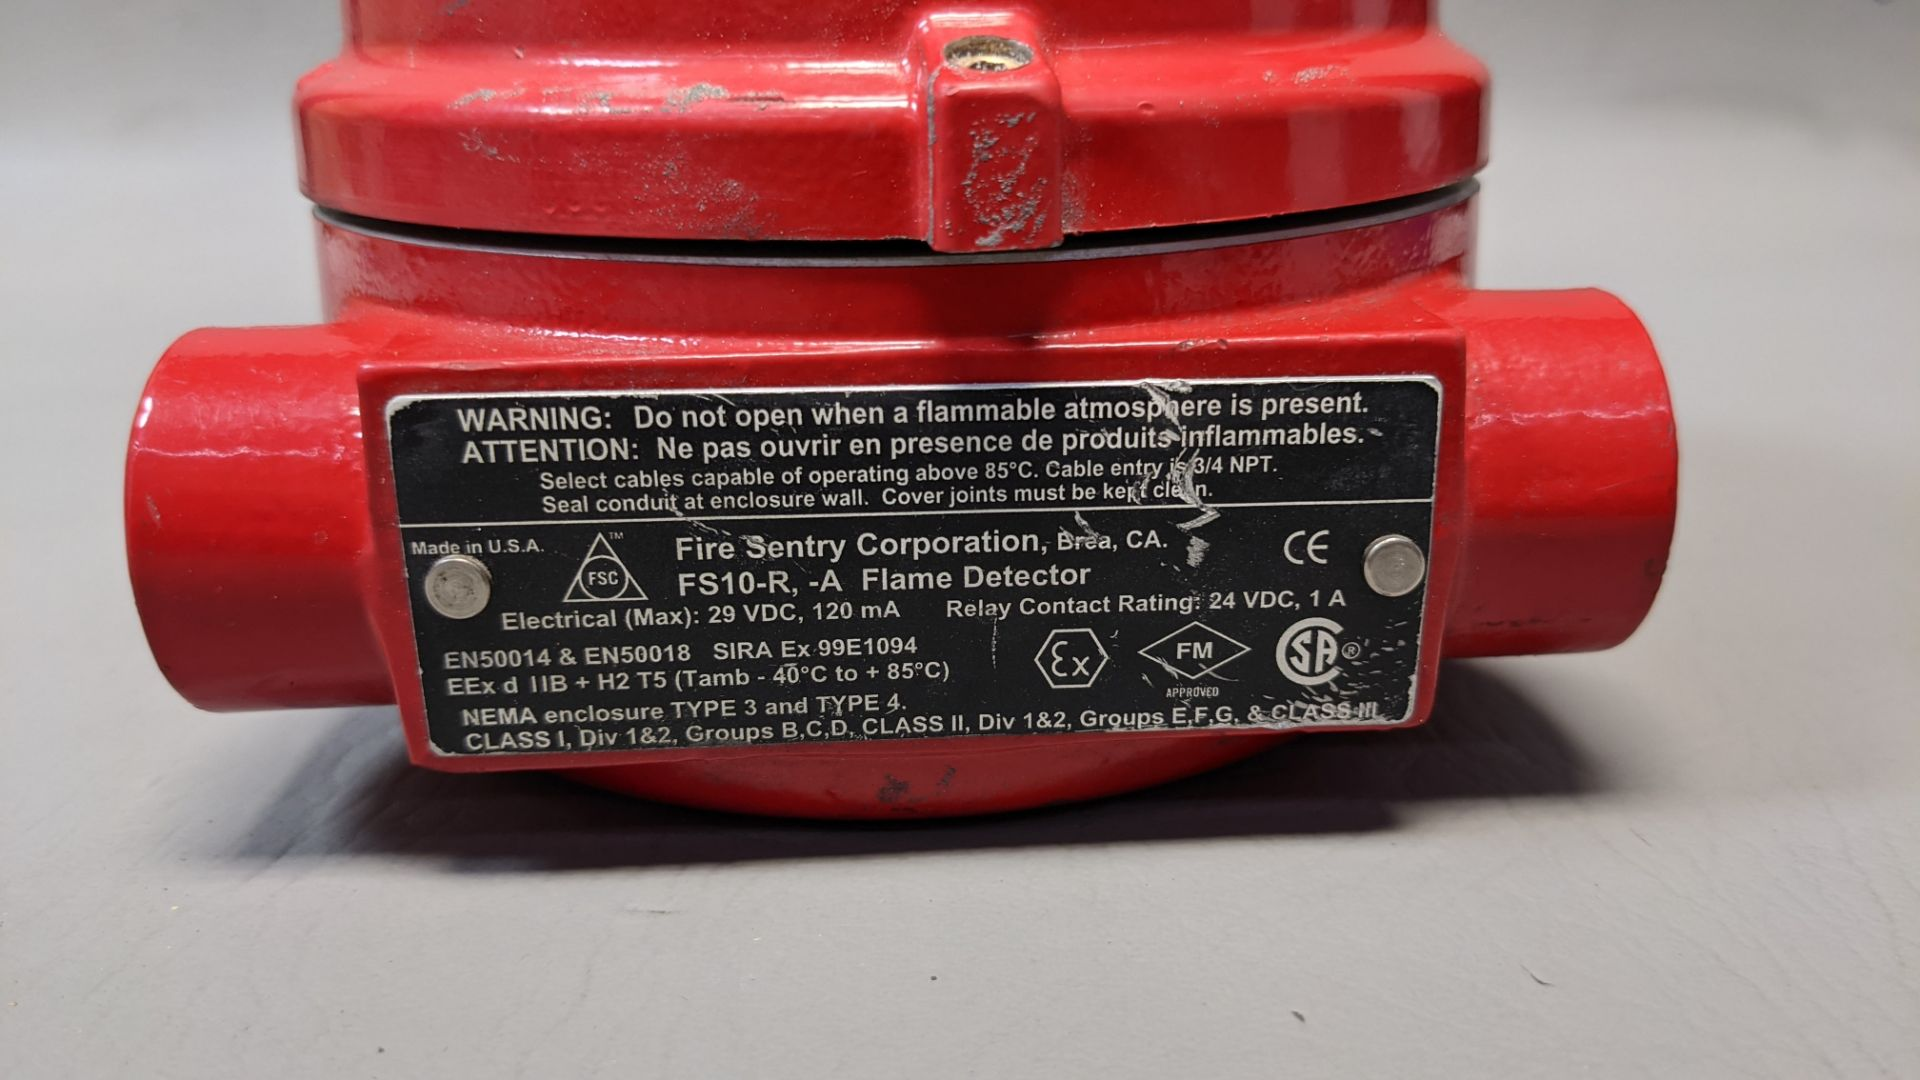 FIRE SENTRY CORP FLAME DETECTOR - Image 2 of 3